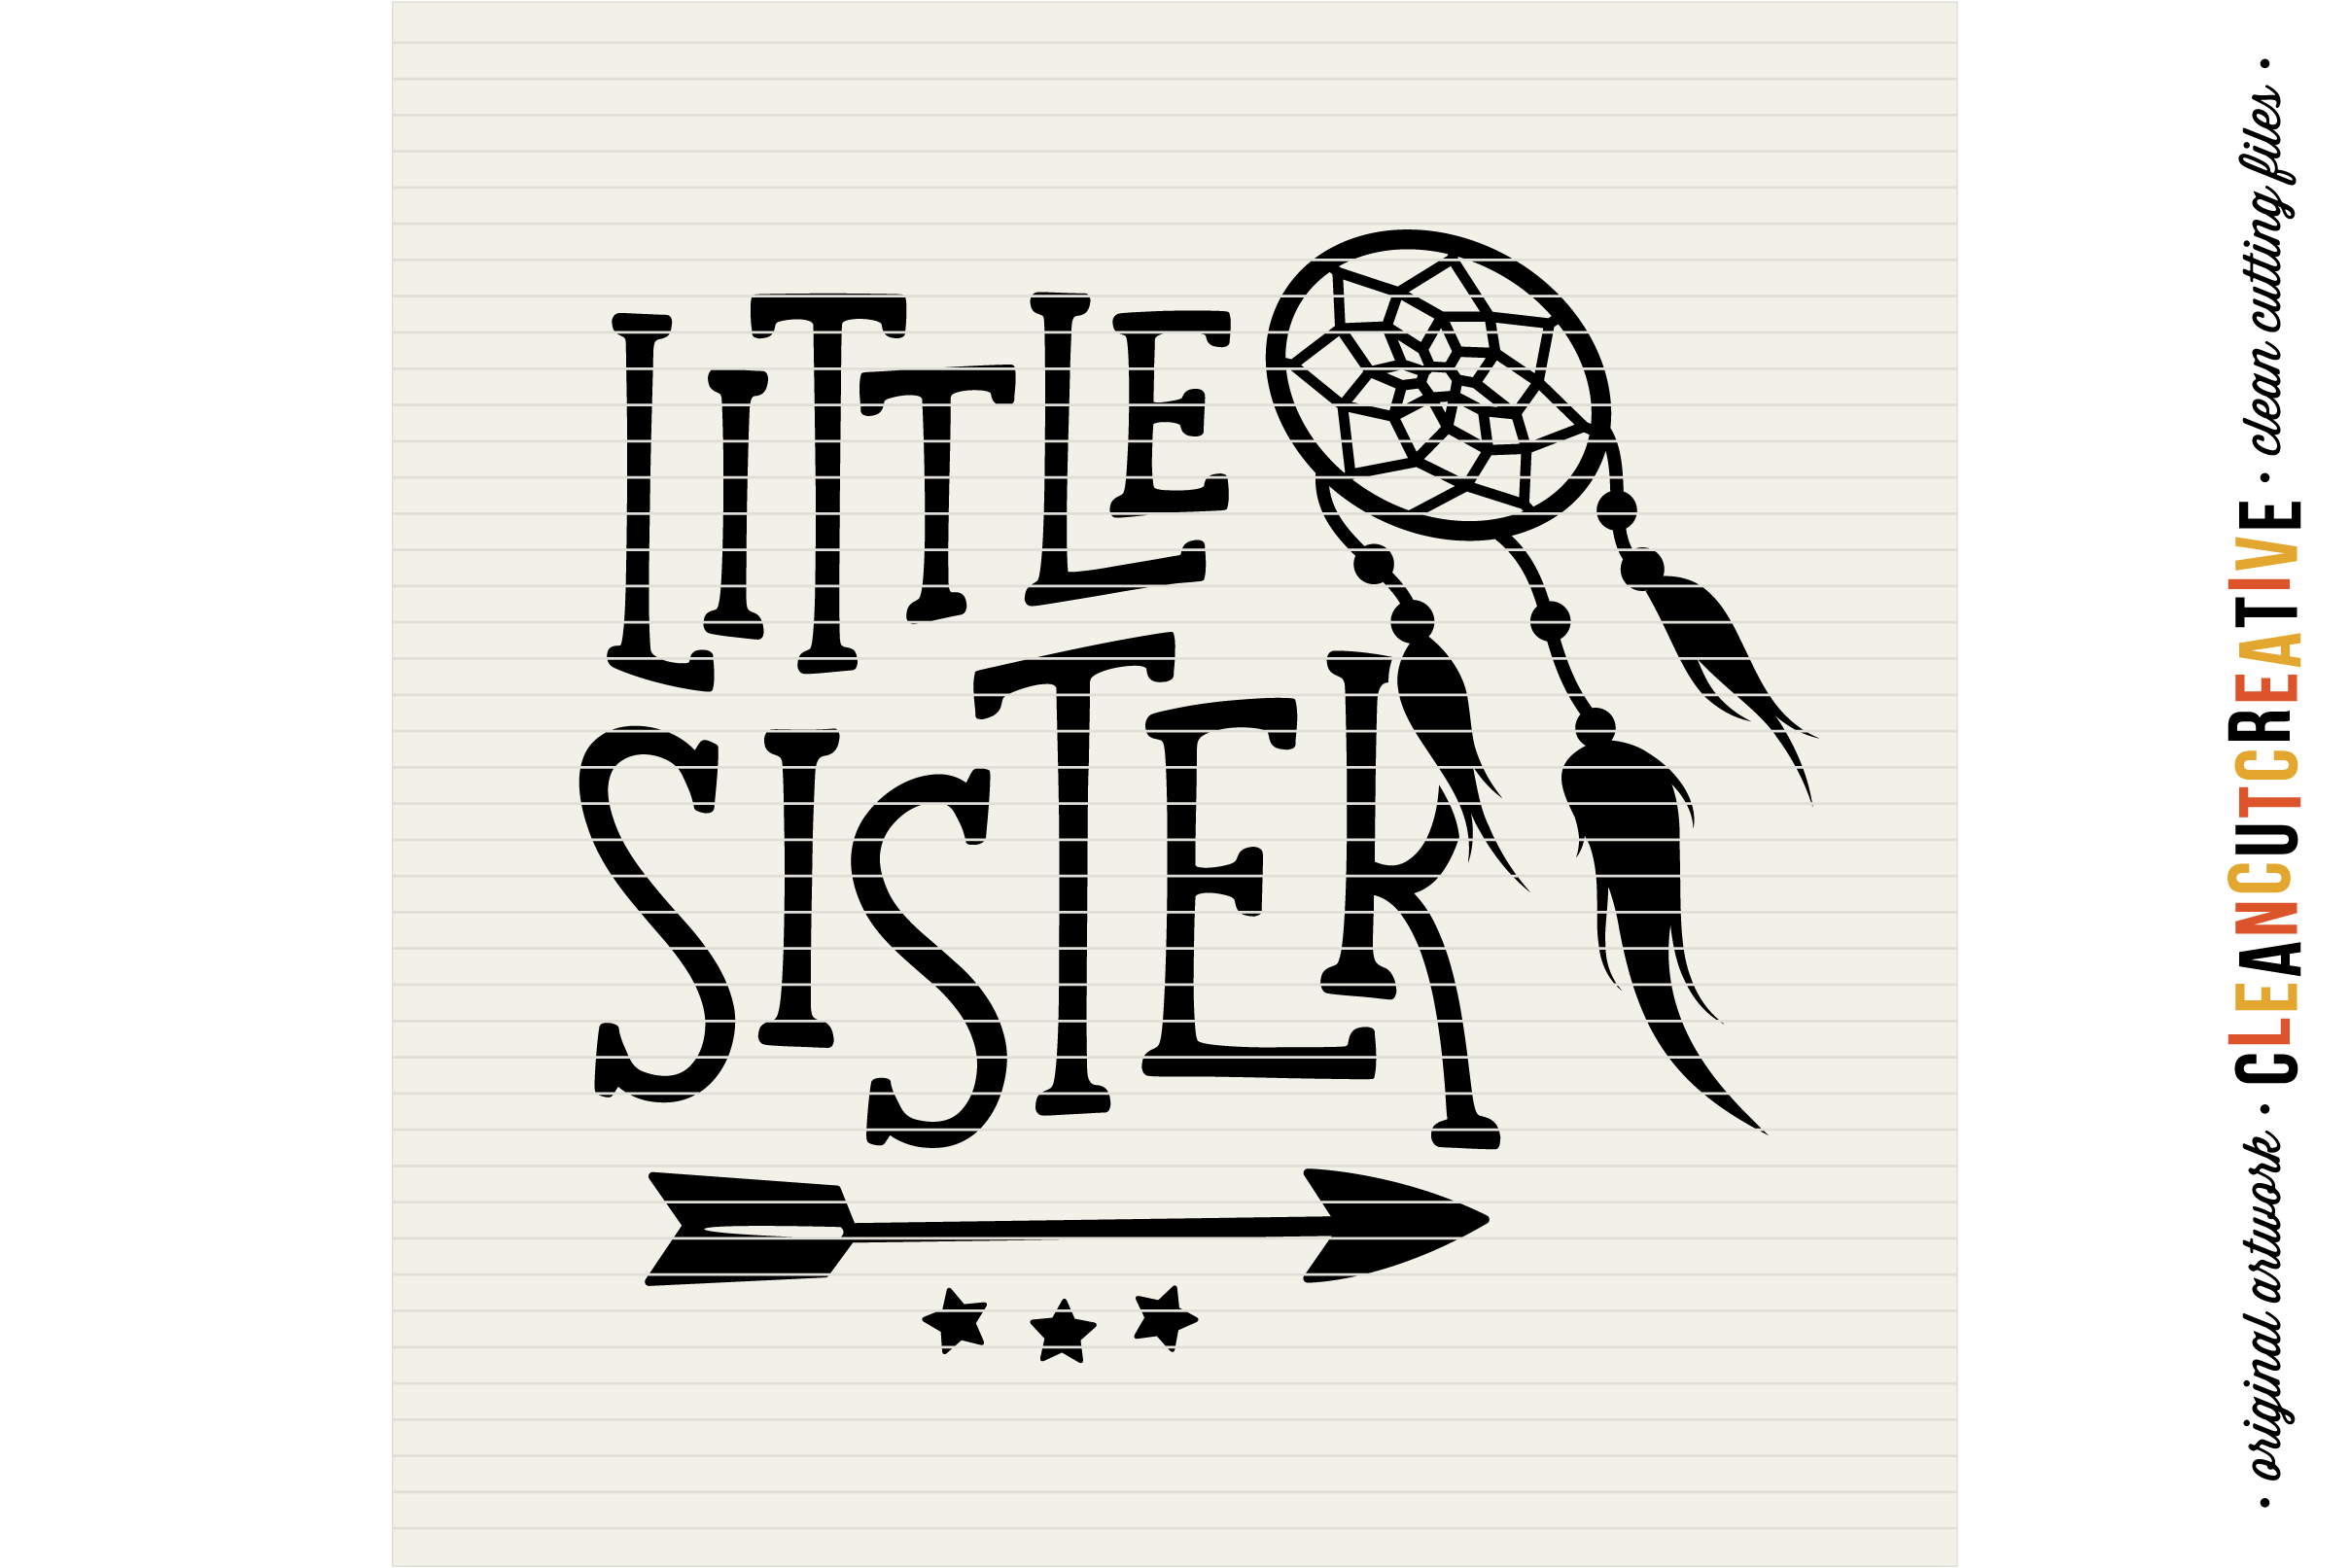 LITTLE SISTER cutfile design withdreamcatcher and feathers - SVG DXF EPS PNG clean cutting files example image 3